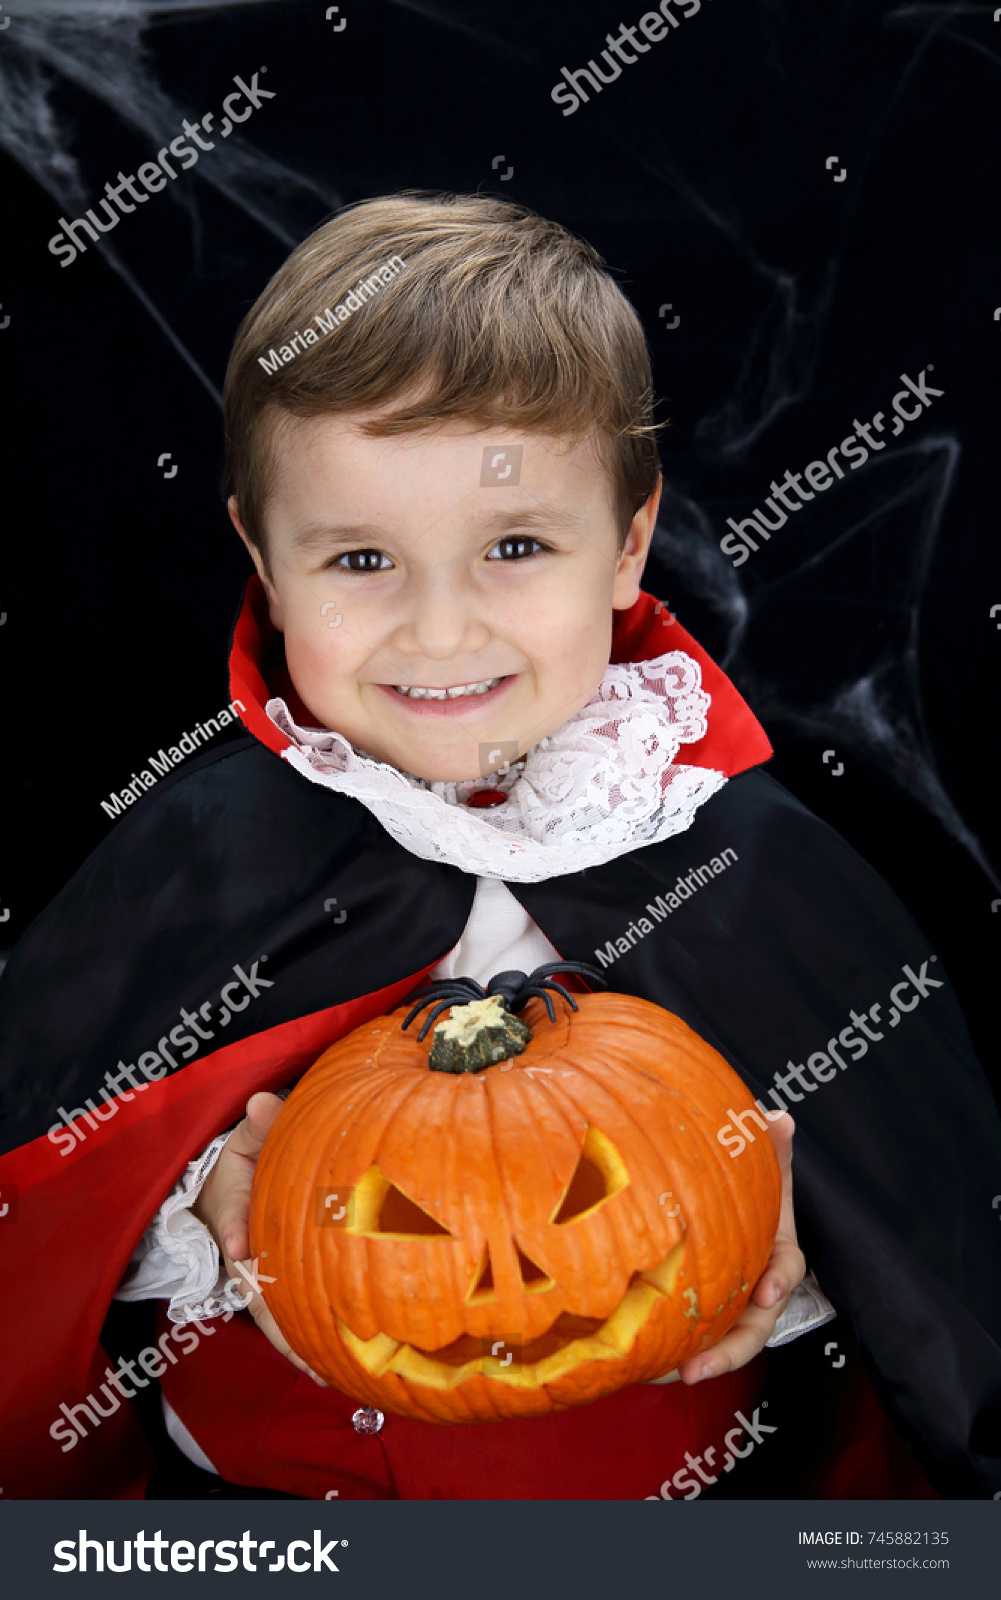 child with v&ire costume holding a pumpkin in a black background with spider web  sc 1 st  Shutterstock & Child Vampire Costume Holding Pumpkin Black Stock Photo (Royalty ...